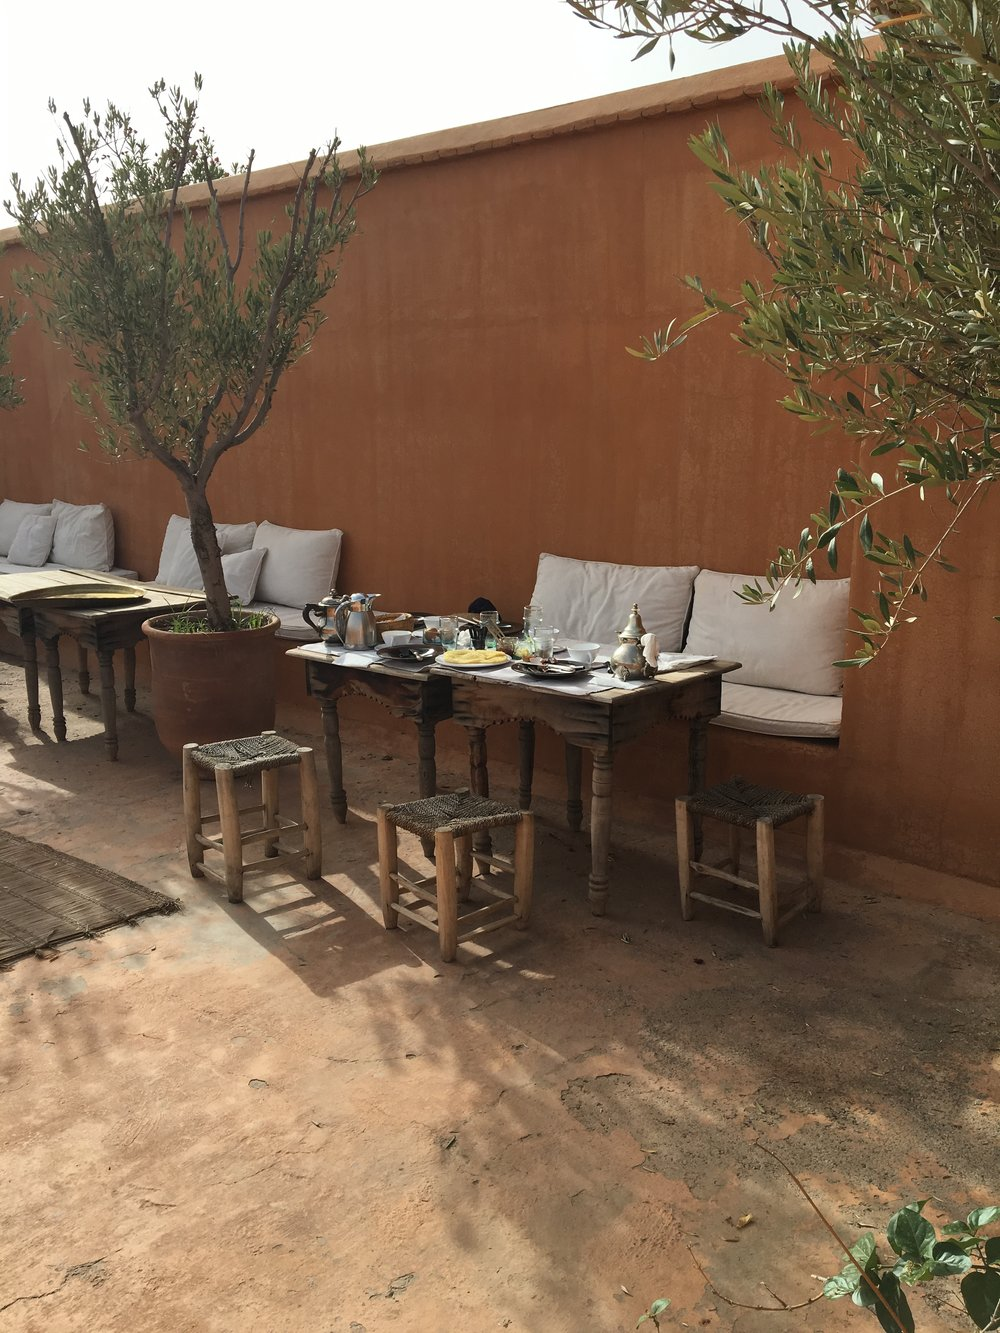 Breakfast on the rooftop terrace at Riad Azzouna 13 | Marrakech